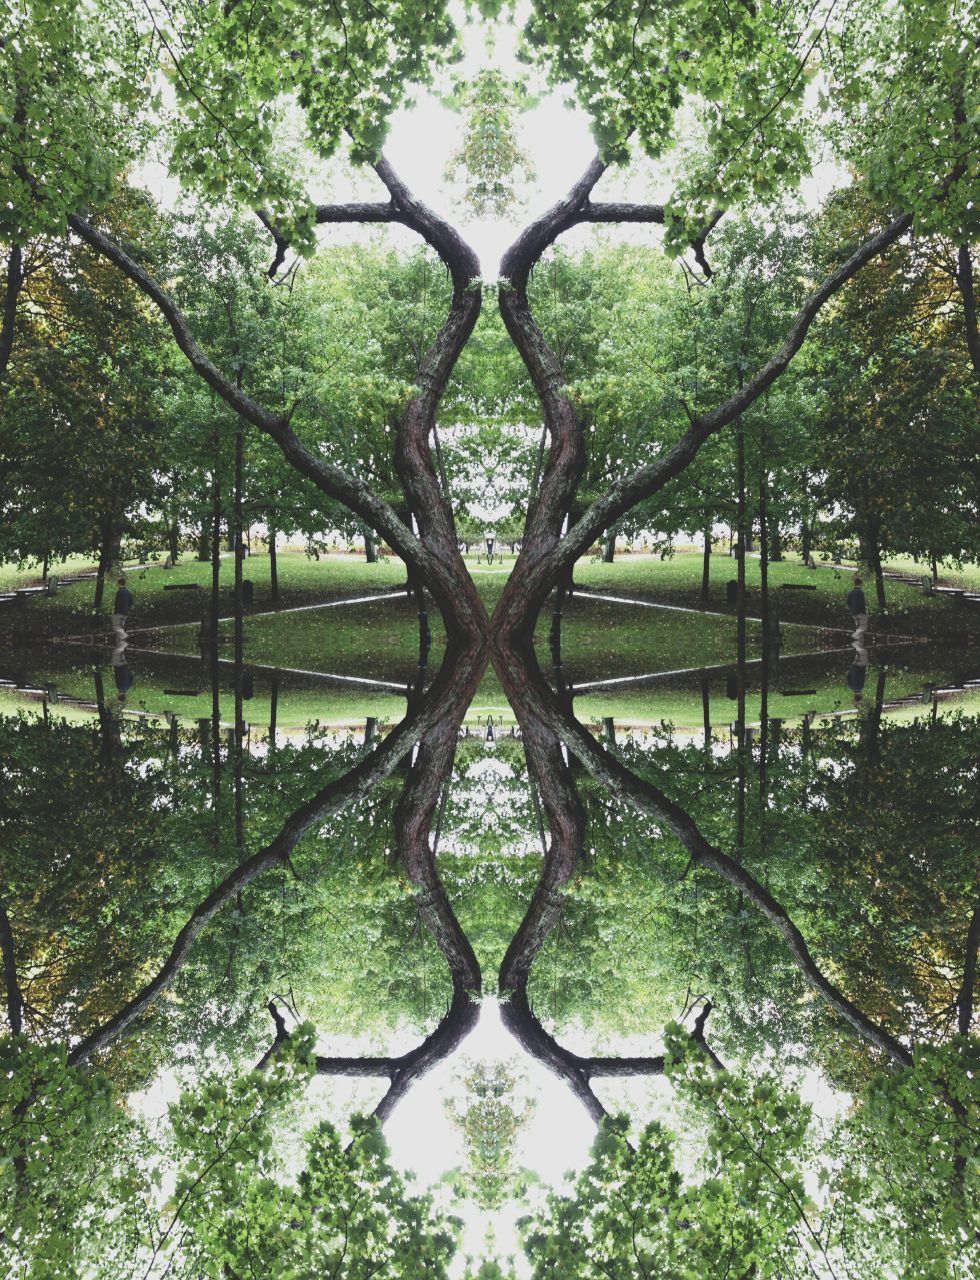 Reflected Trees, by Mike Capson of Saint John, NB.